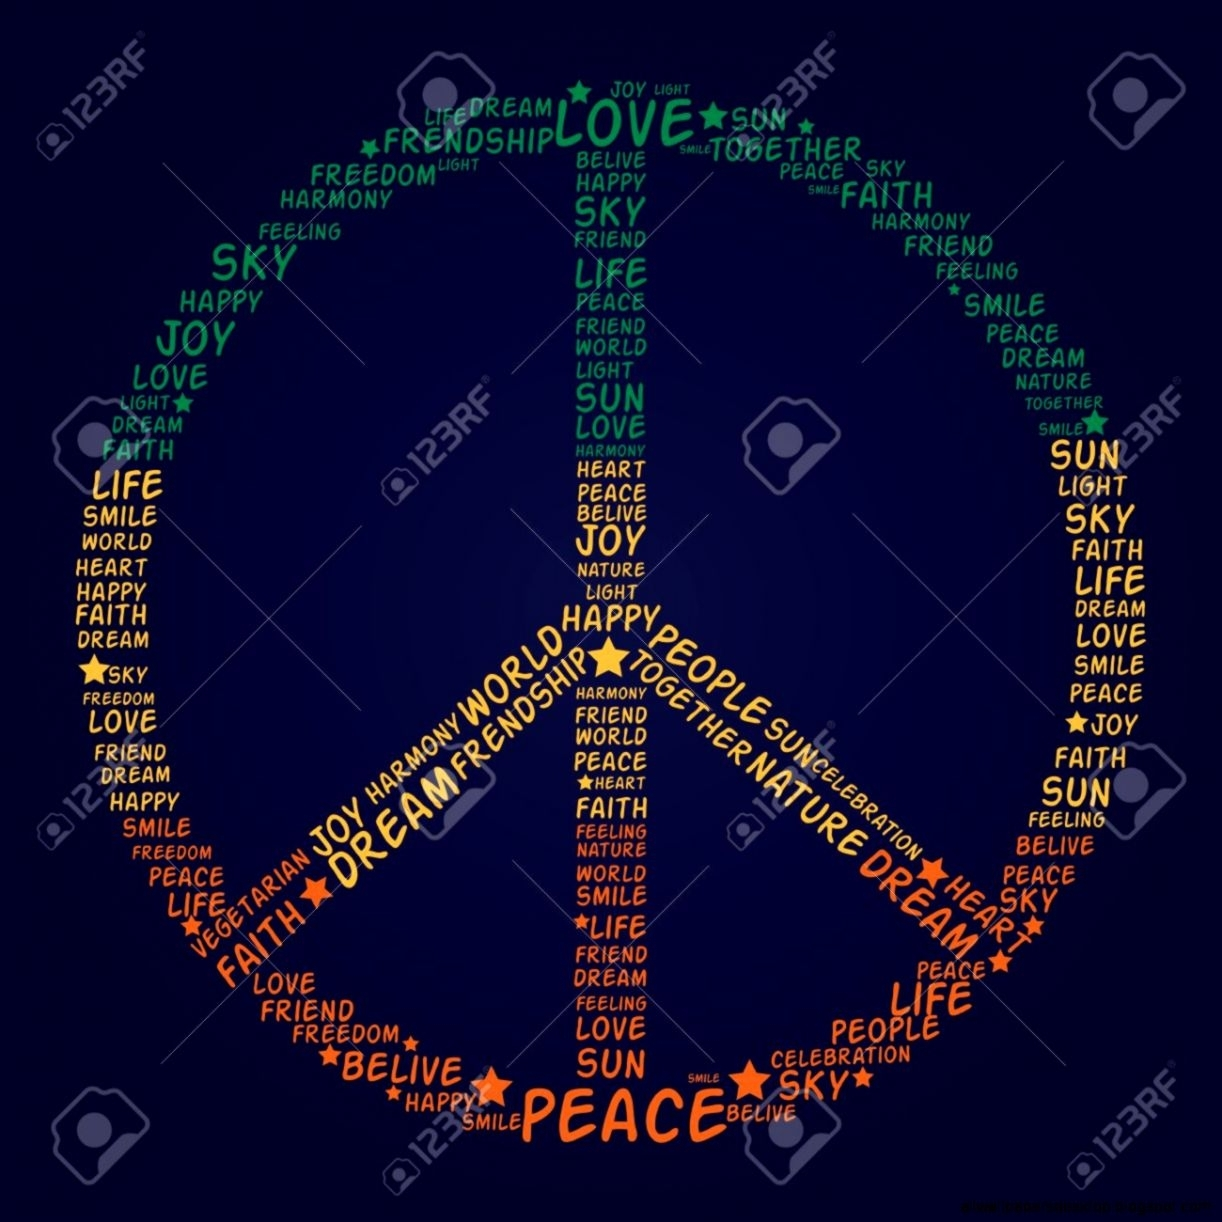 10 Most Popular Paris Peace Sign Wallpaper Full Hd 1920 1080 For Pc